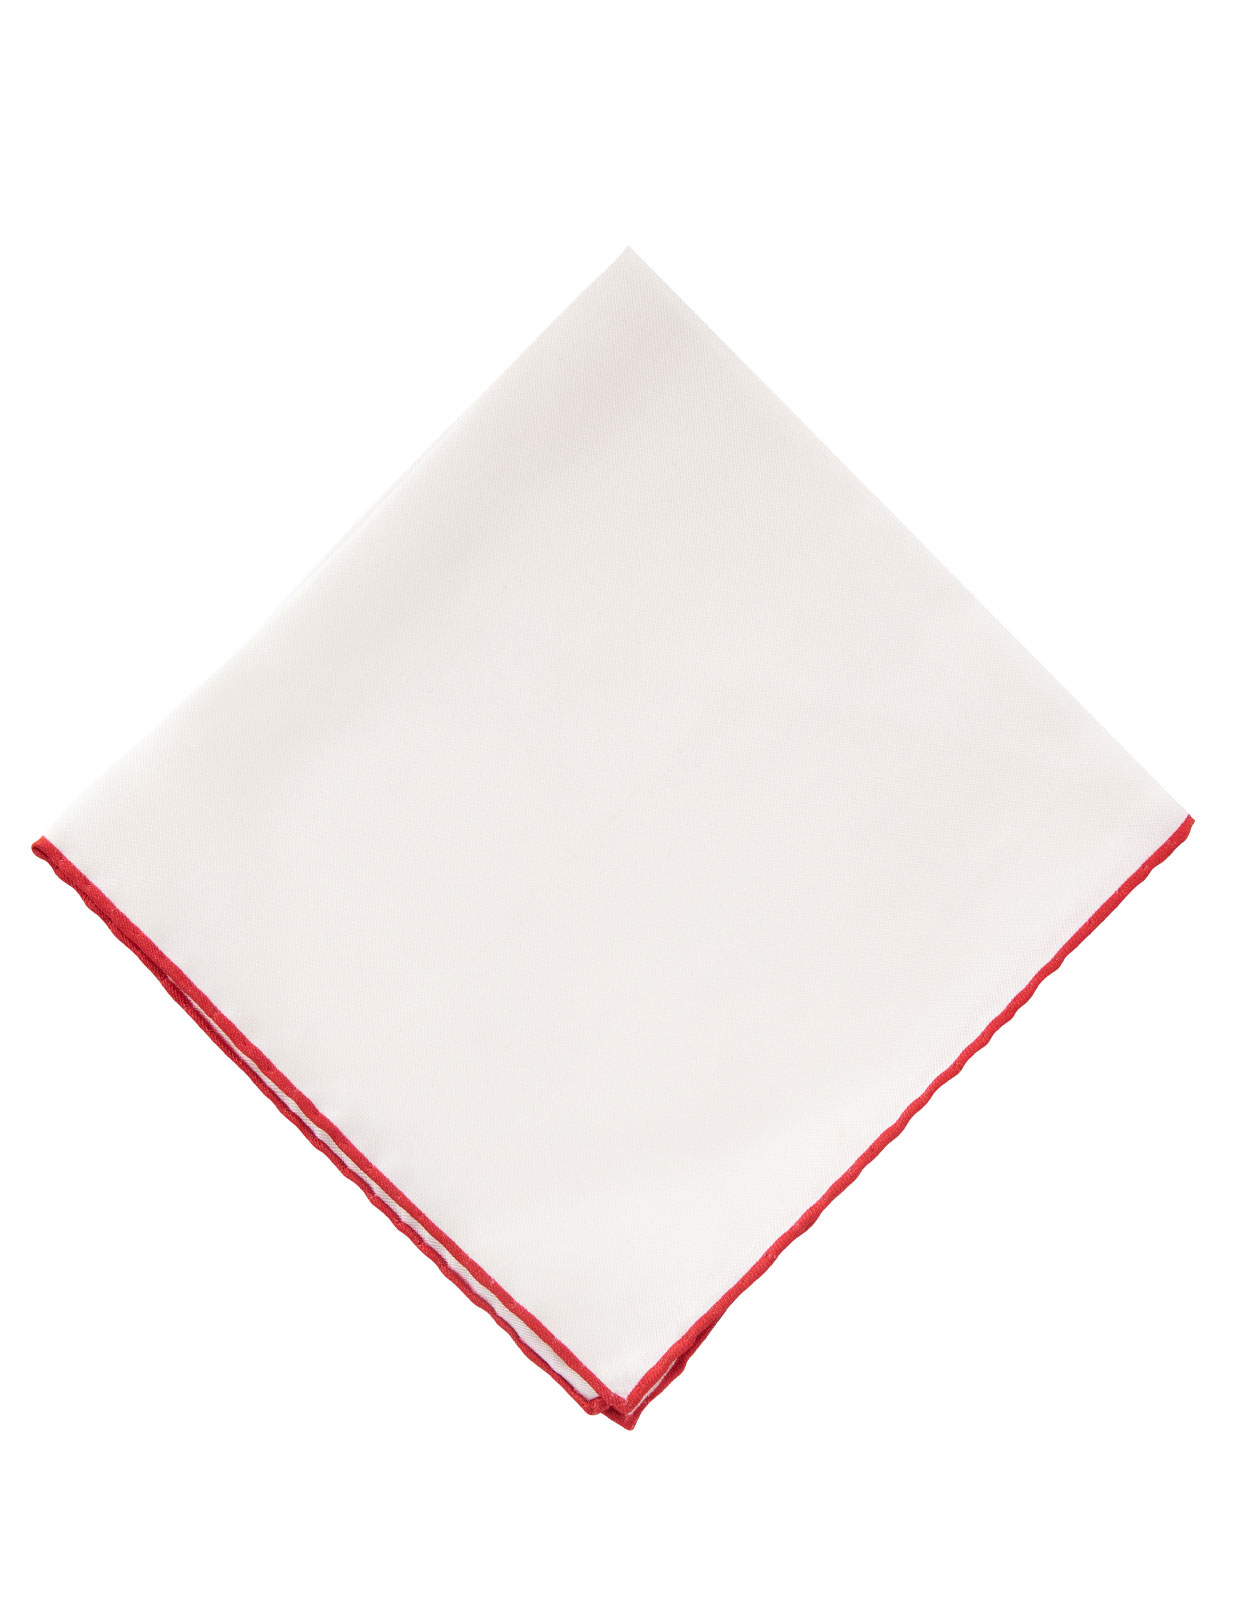 Pocket Square Silk Colored Edging White/Red